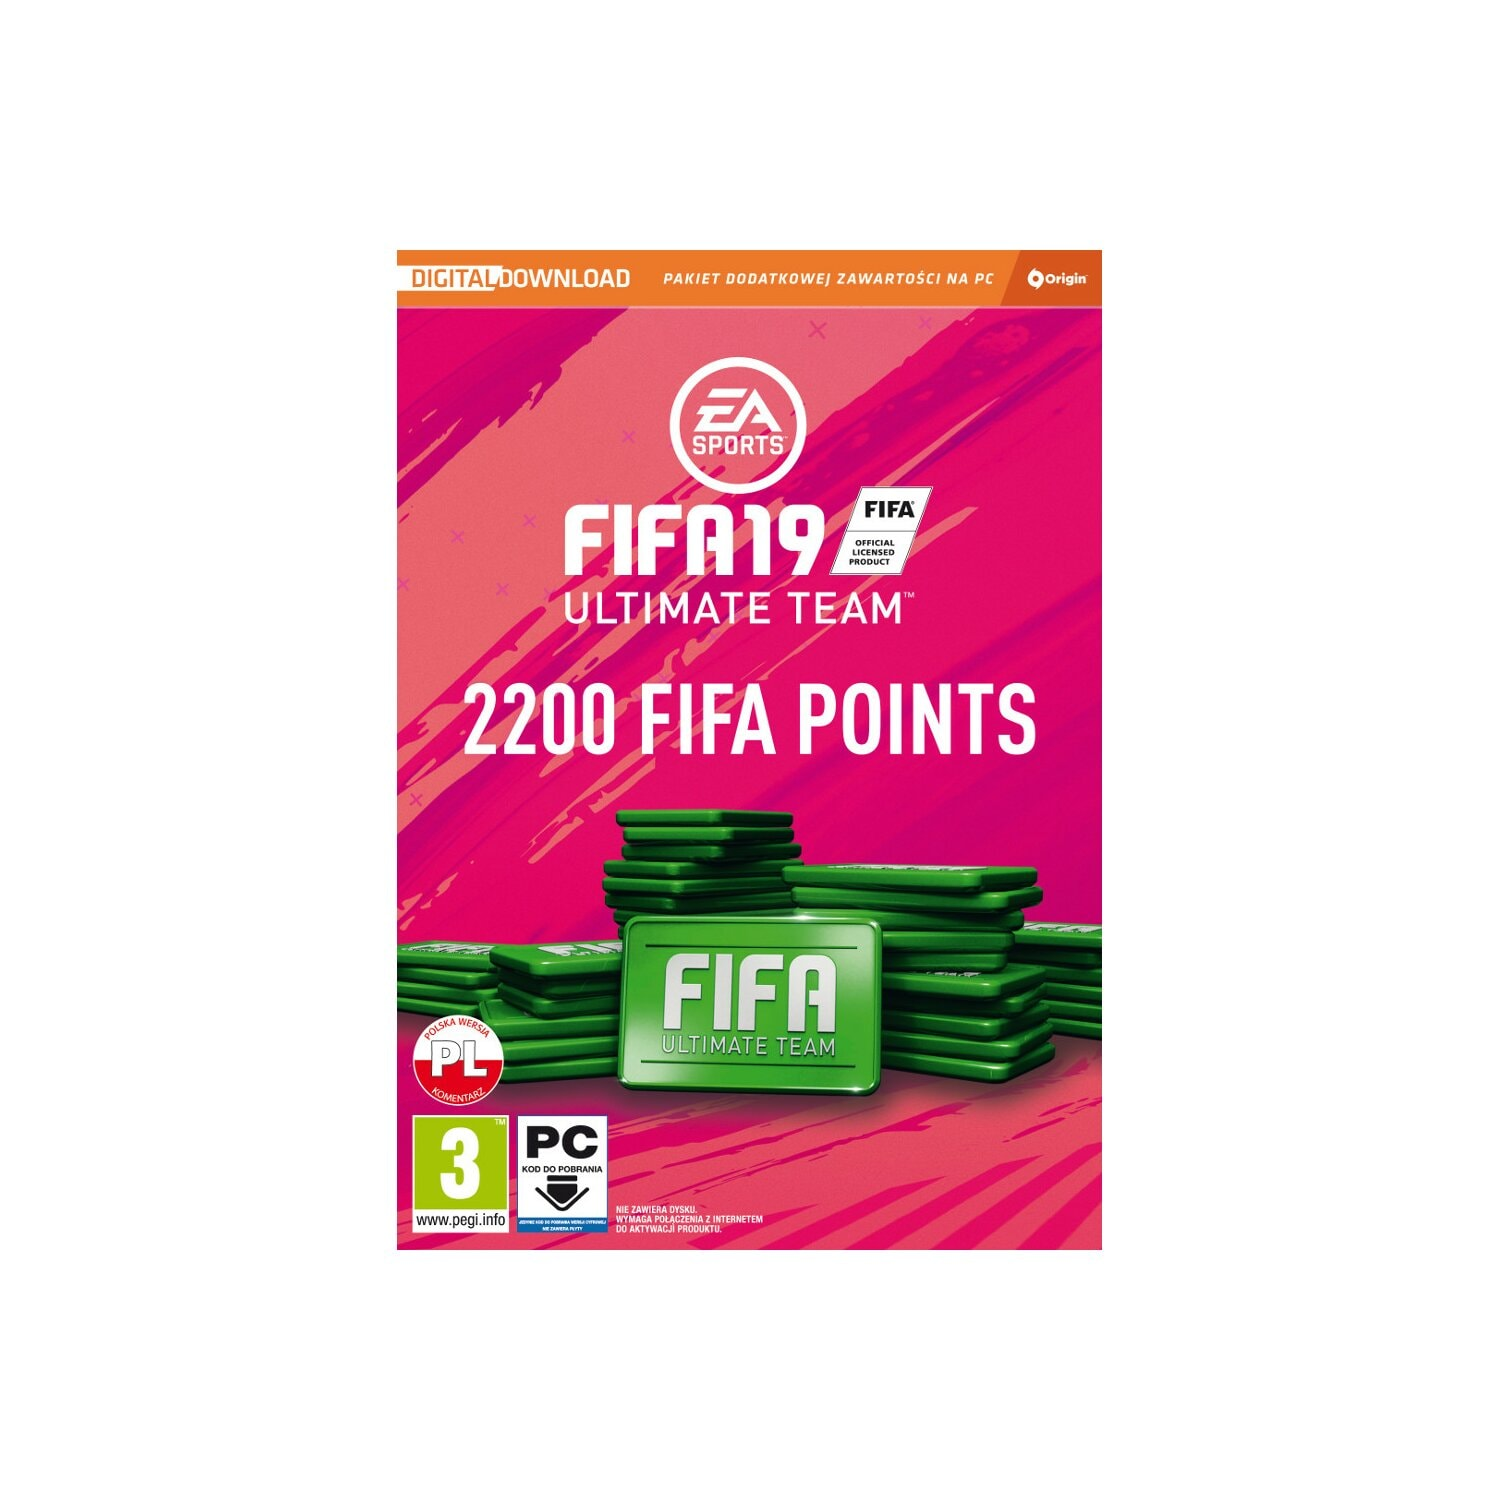 Karta Pre-paid Fifa 19 Ultimate Team 2200 FIFA Points